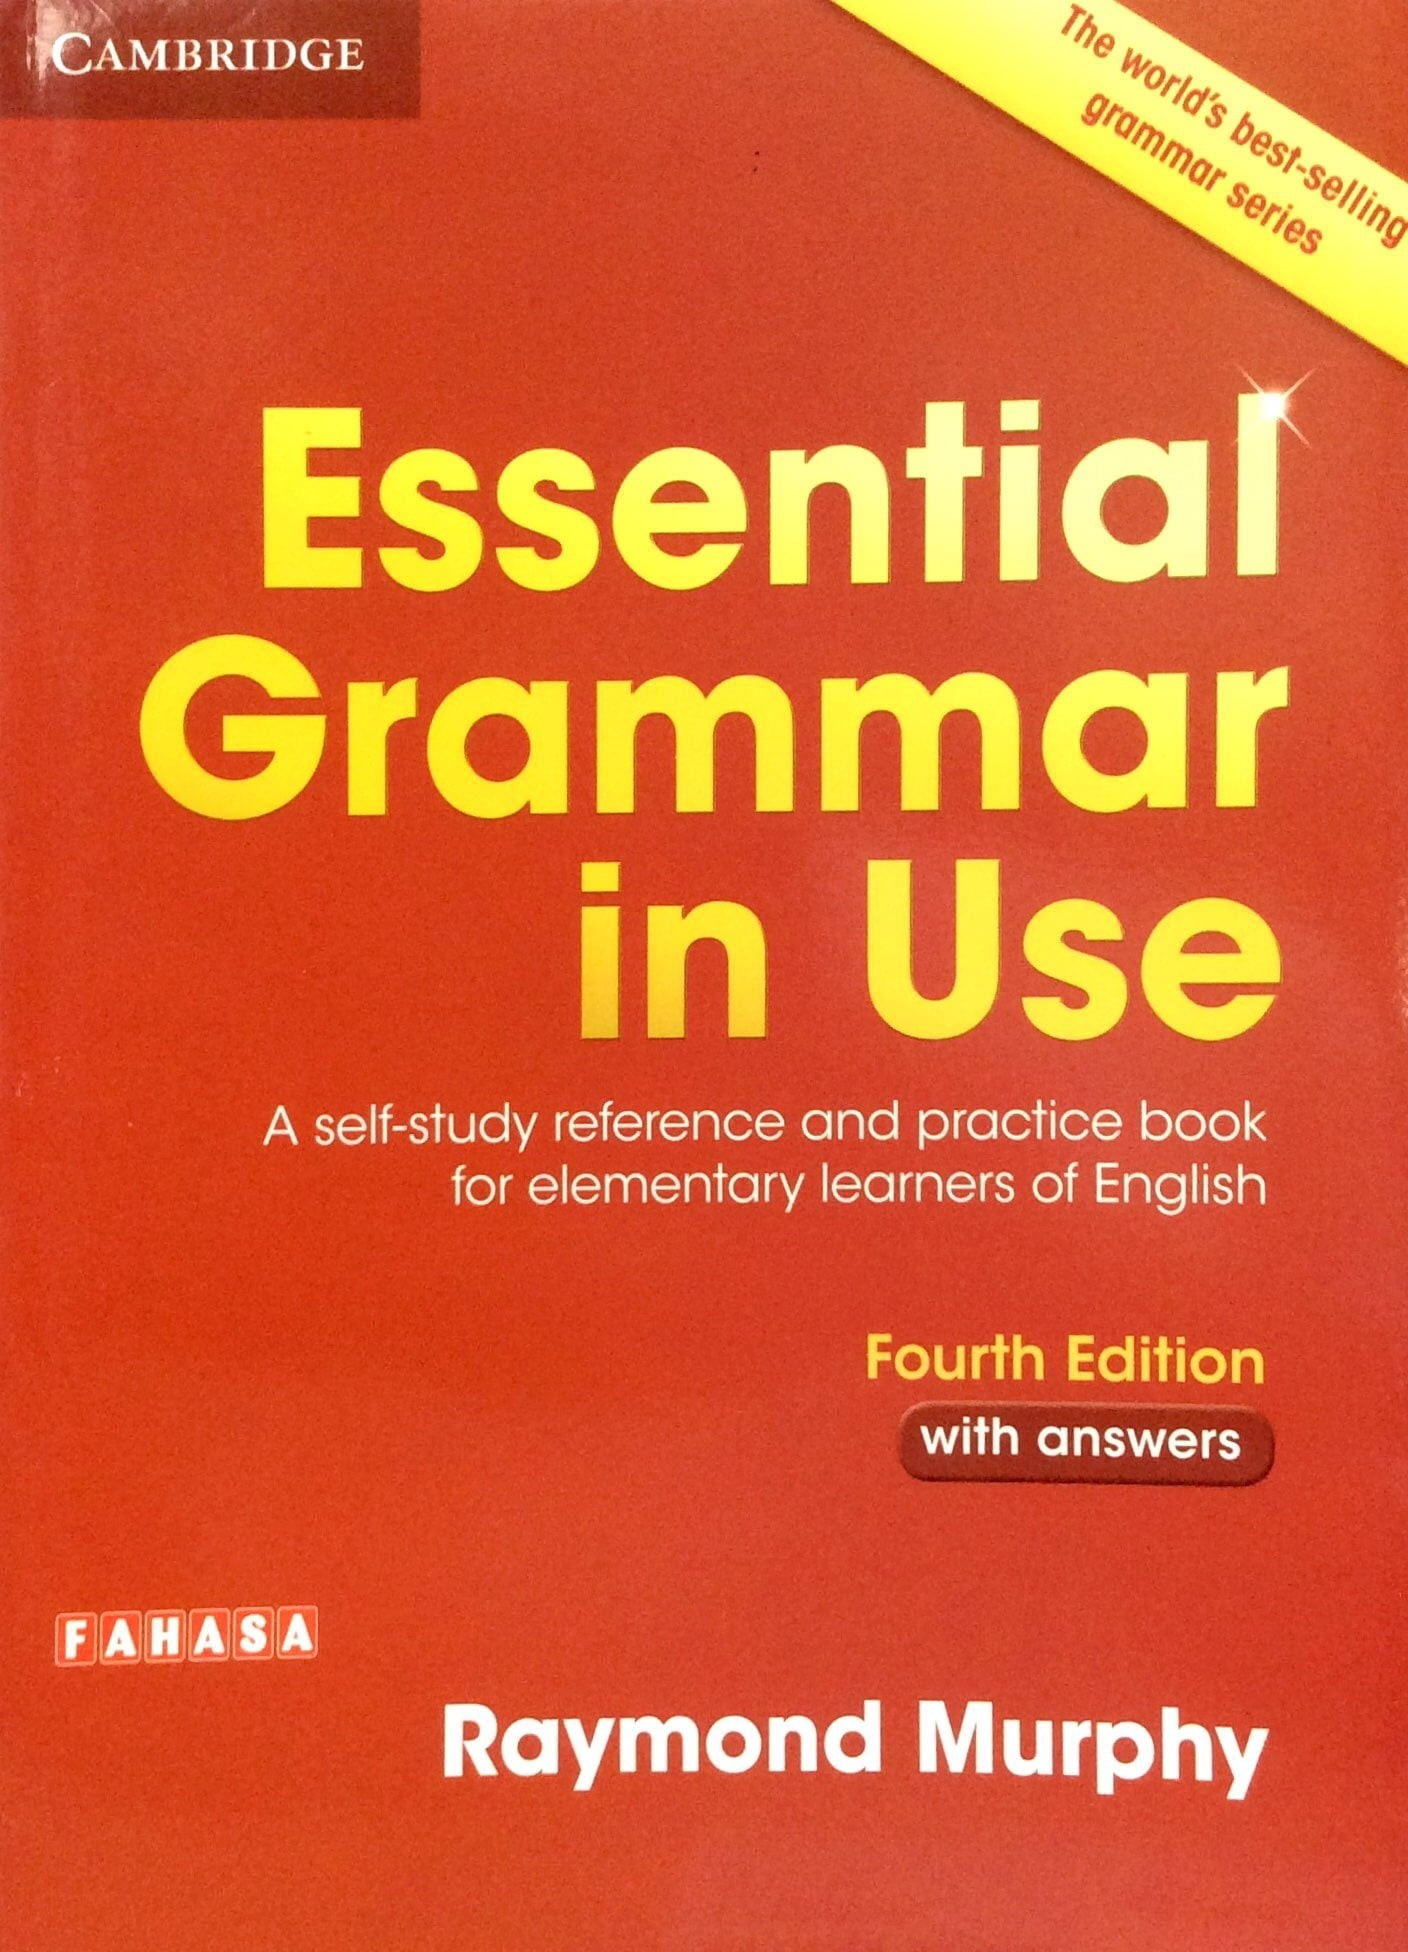 Essential Grammar in Use Book with Answers Fahasa Reprint Edition: A  Self-Study Reference and Practice Book for Elementary Learners of English